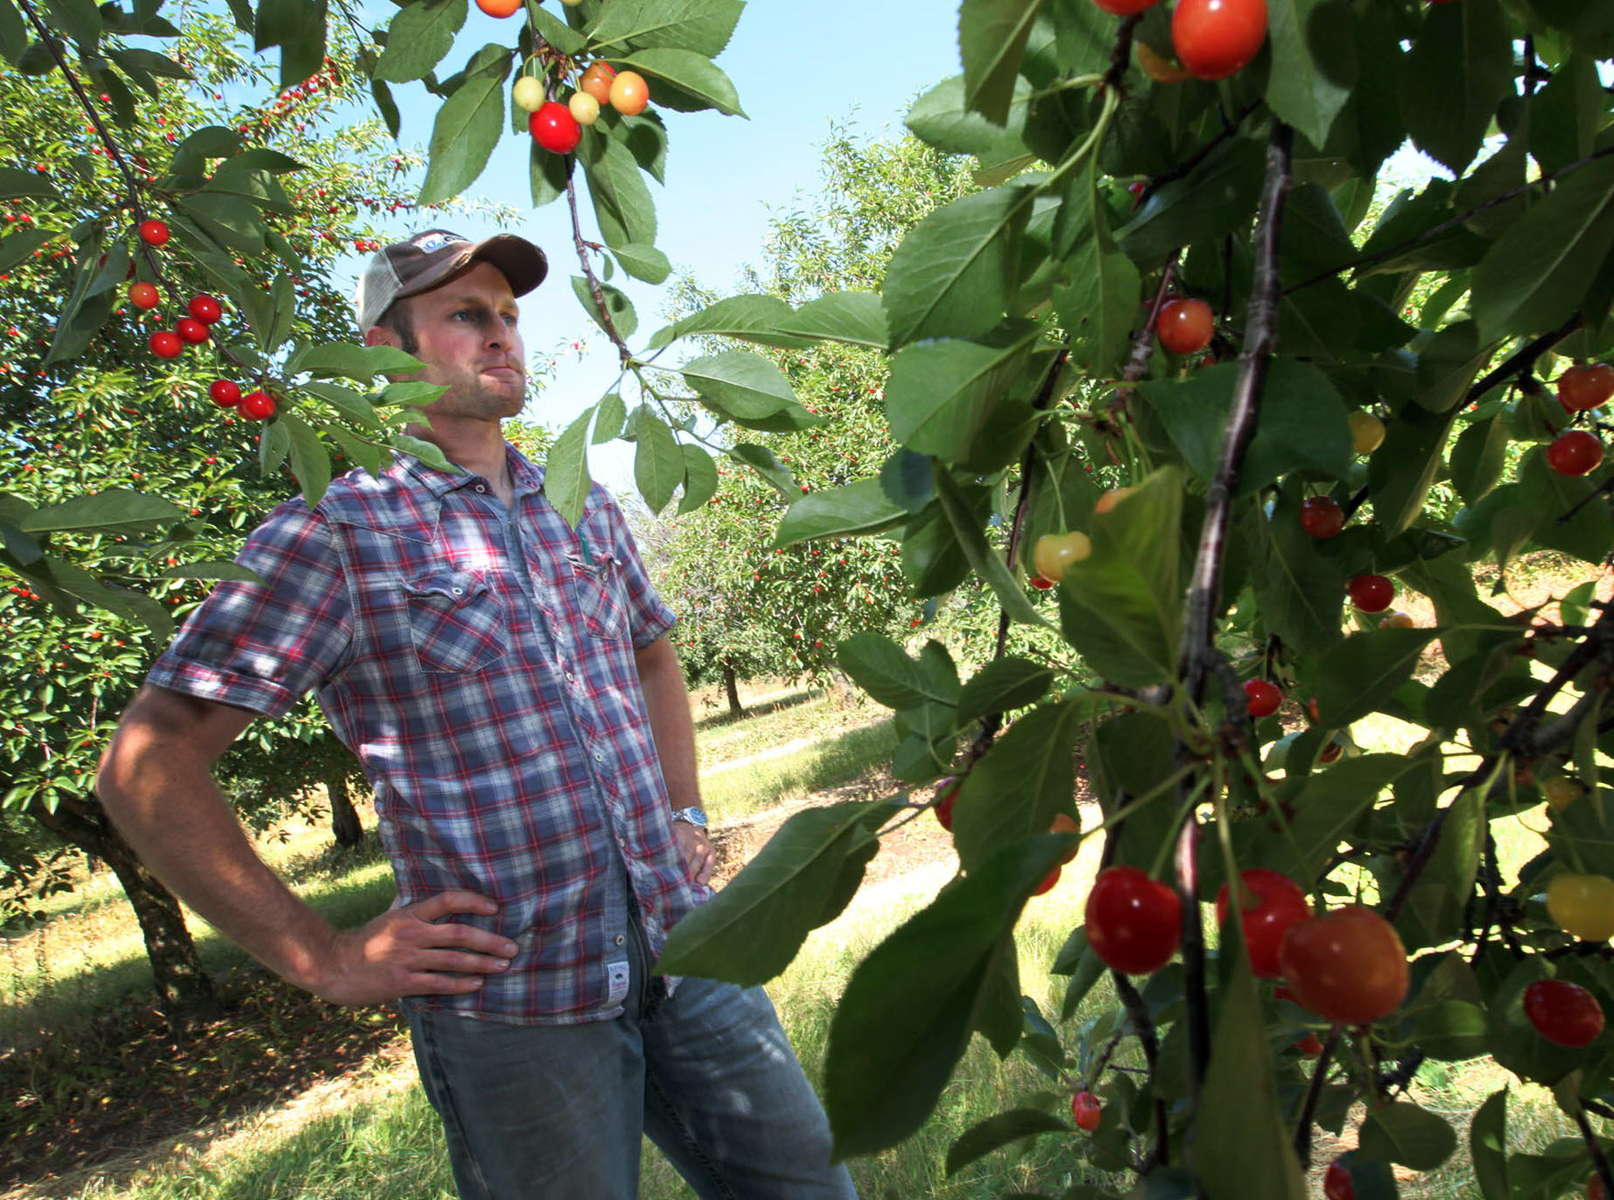 The Door County cherry harvest was decimated by warm temps in March, followed by a hard freeze. This year's crop will likely yield only 500,000 pounds, and cherry lovers will have to go to Door. Co. to get it.